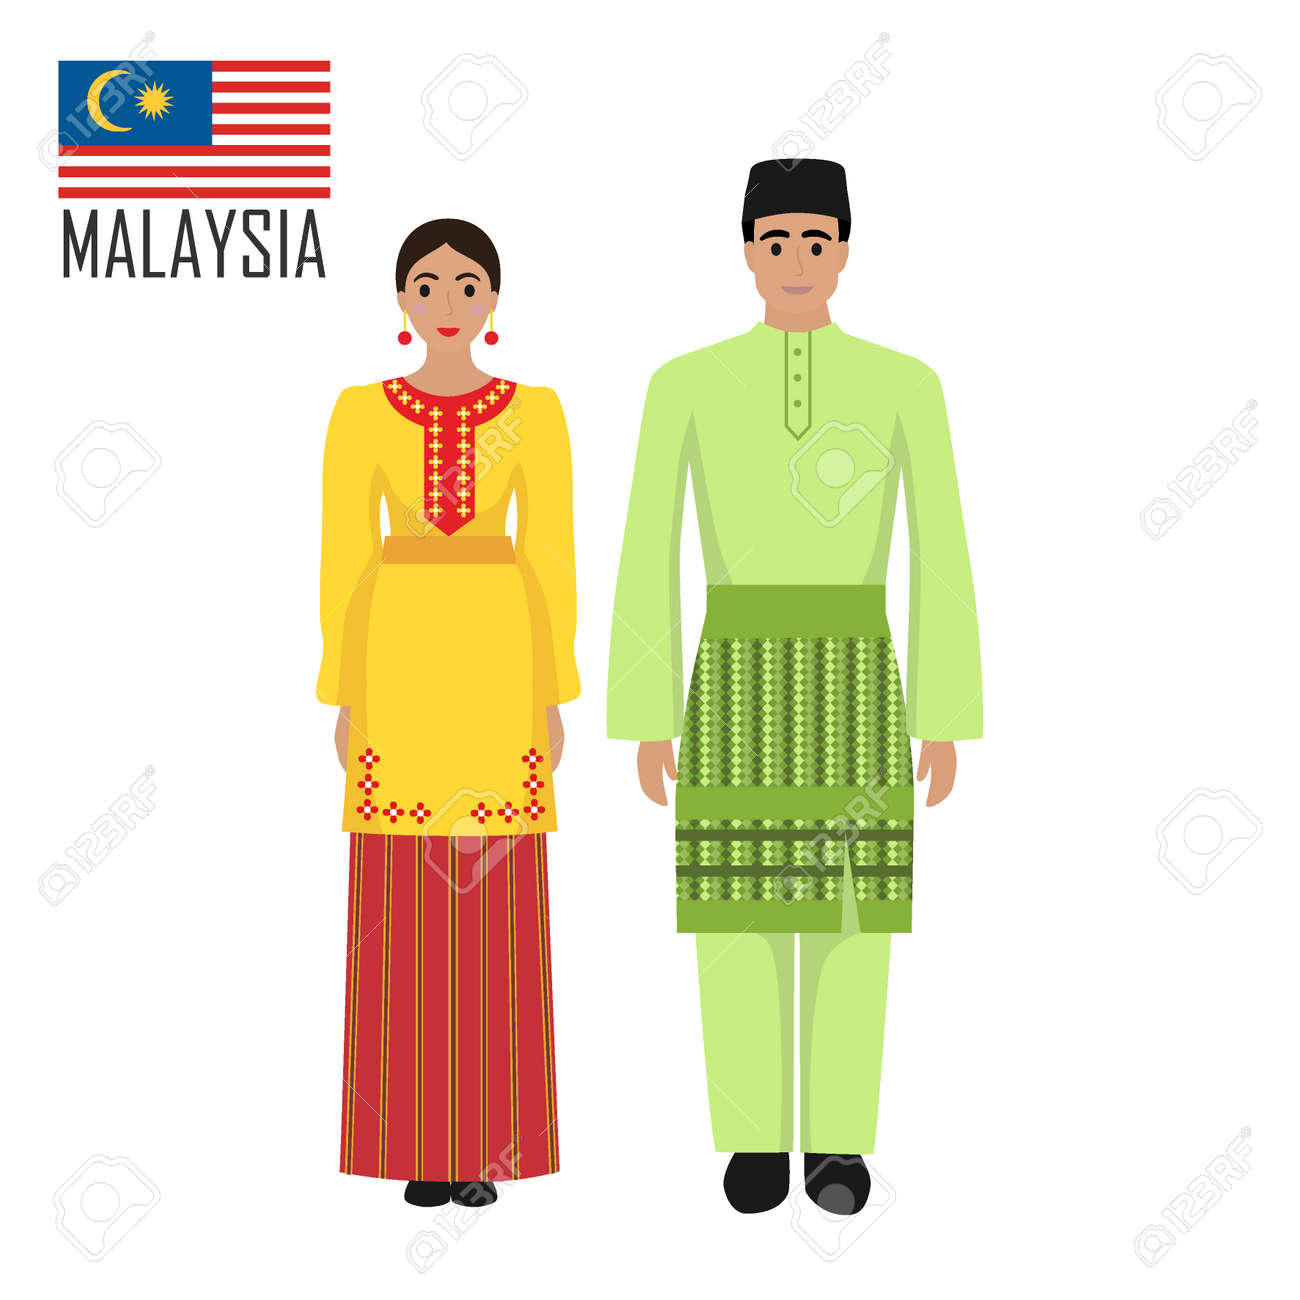 Malasian young man and woman in national costume. Malaysia couple wearing traditional costumes. Vector illustration - 140068665